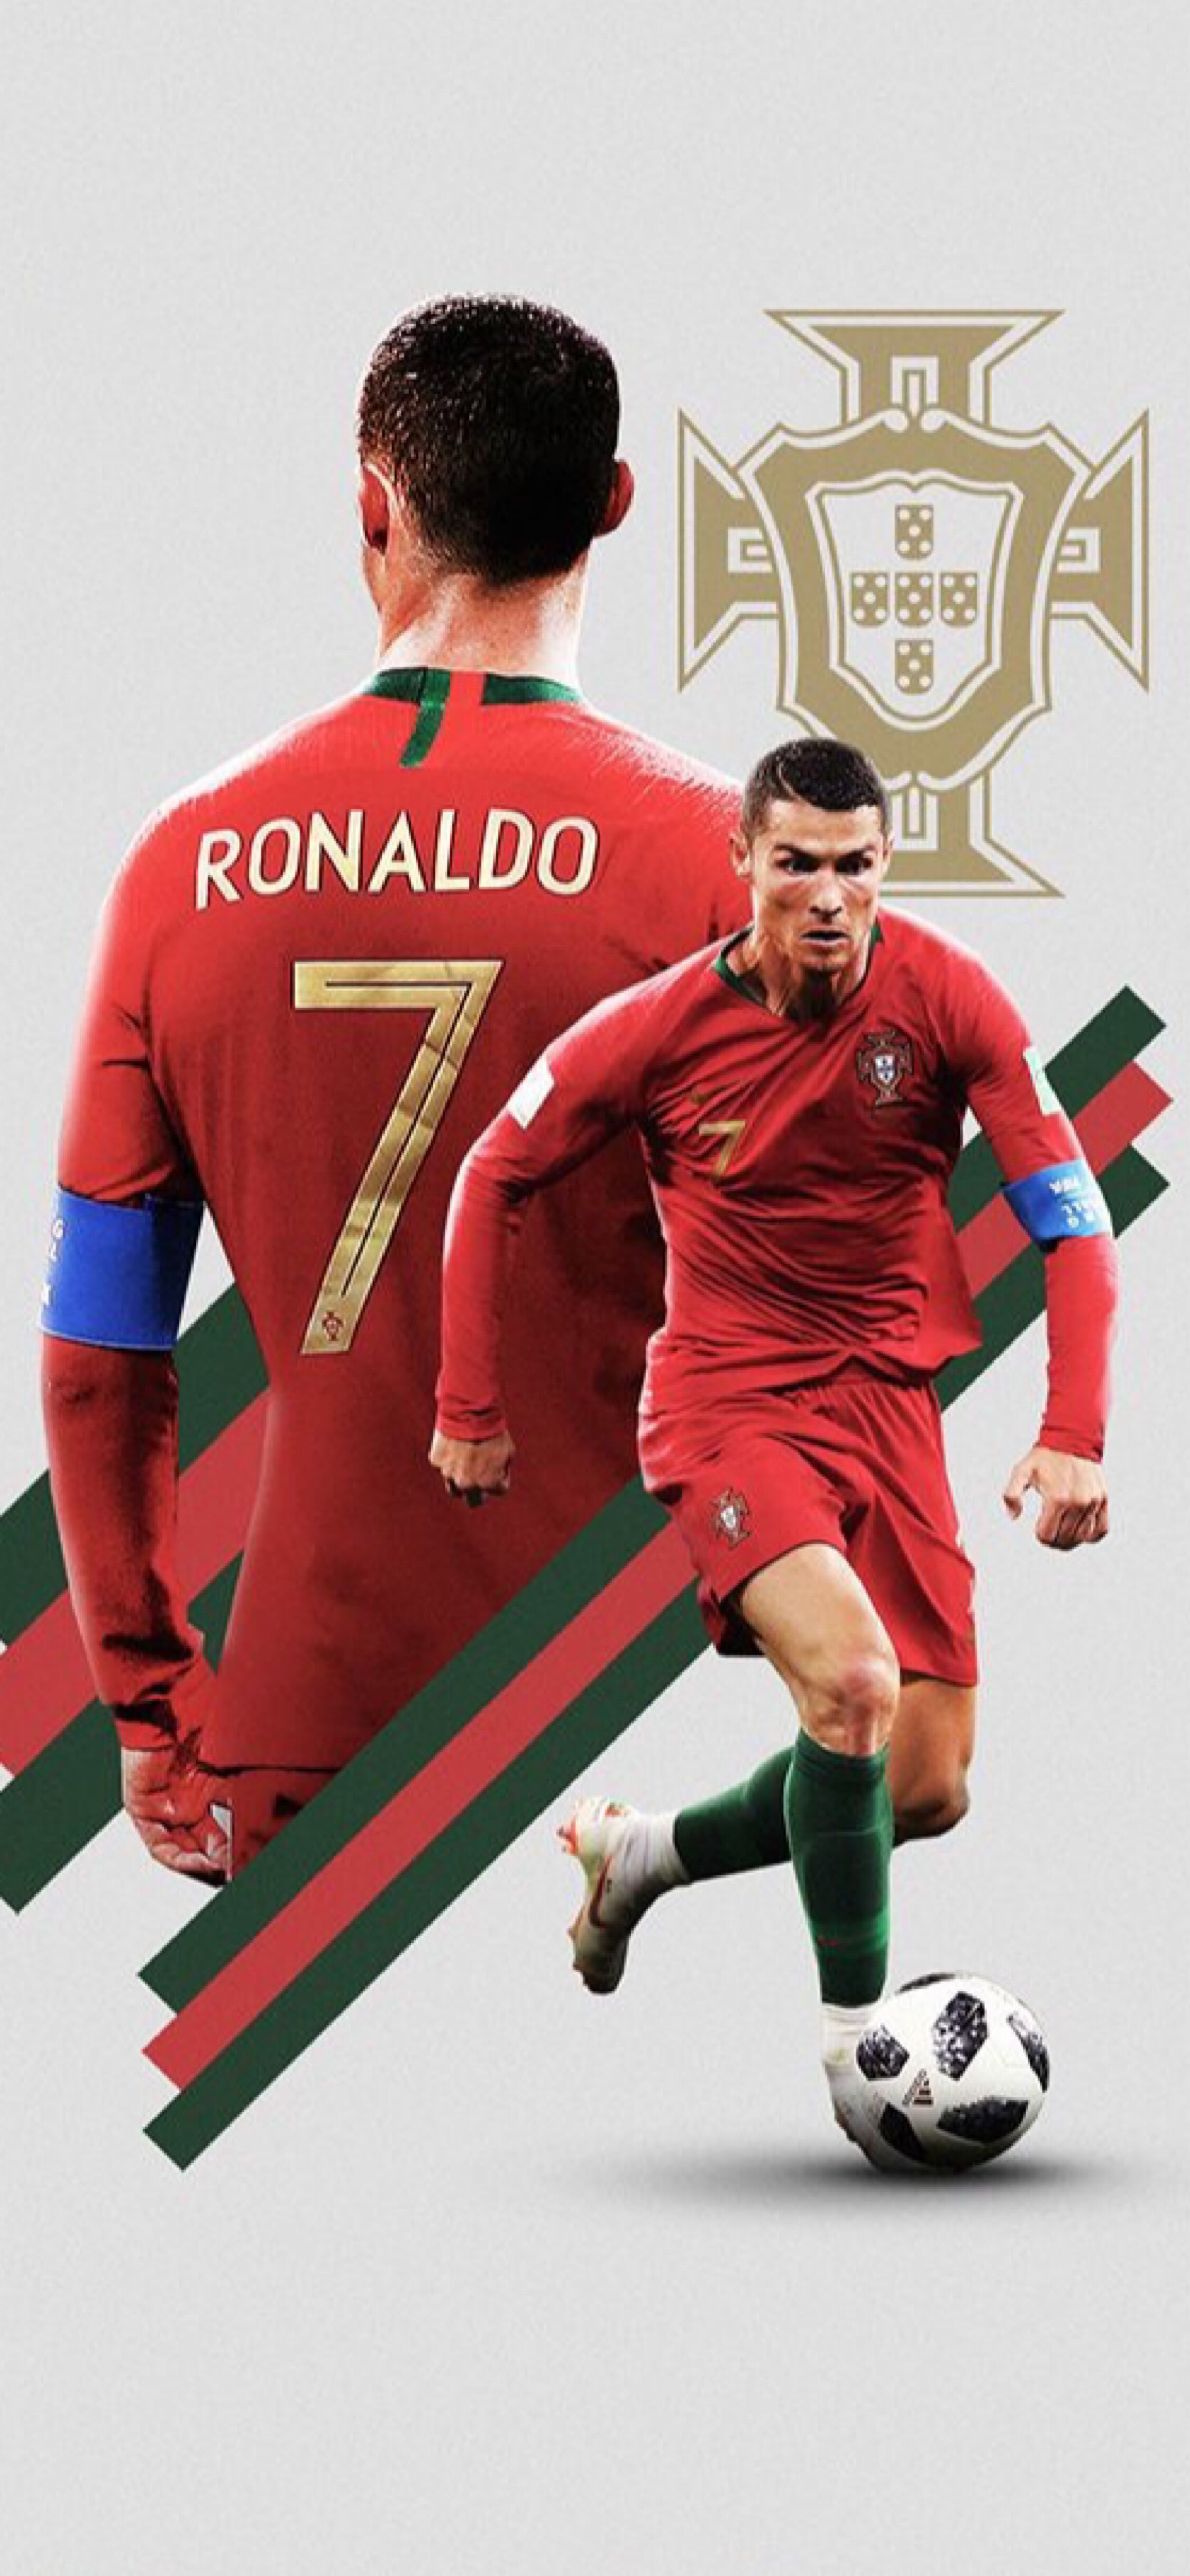 Pin By Tarick Prendergast On Iphone X Cristiano Ronaldo Wallpaper With Images Cristiano Ronaldo Portugal Ronaldo Cristino Ronaldo